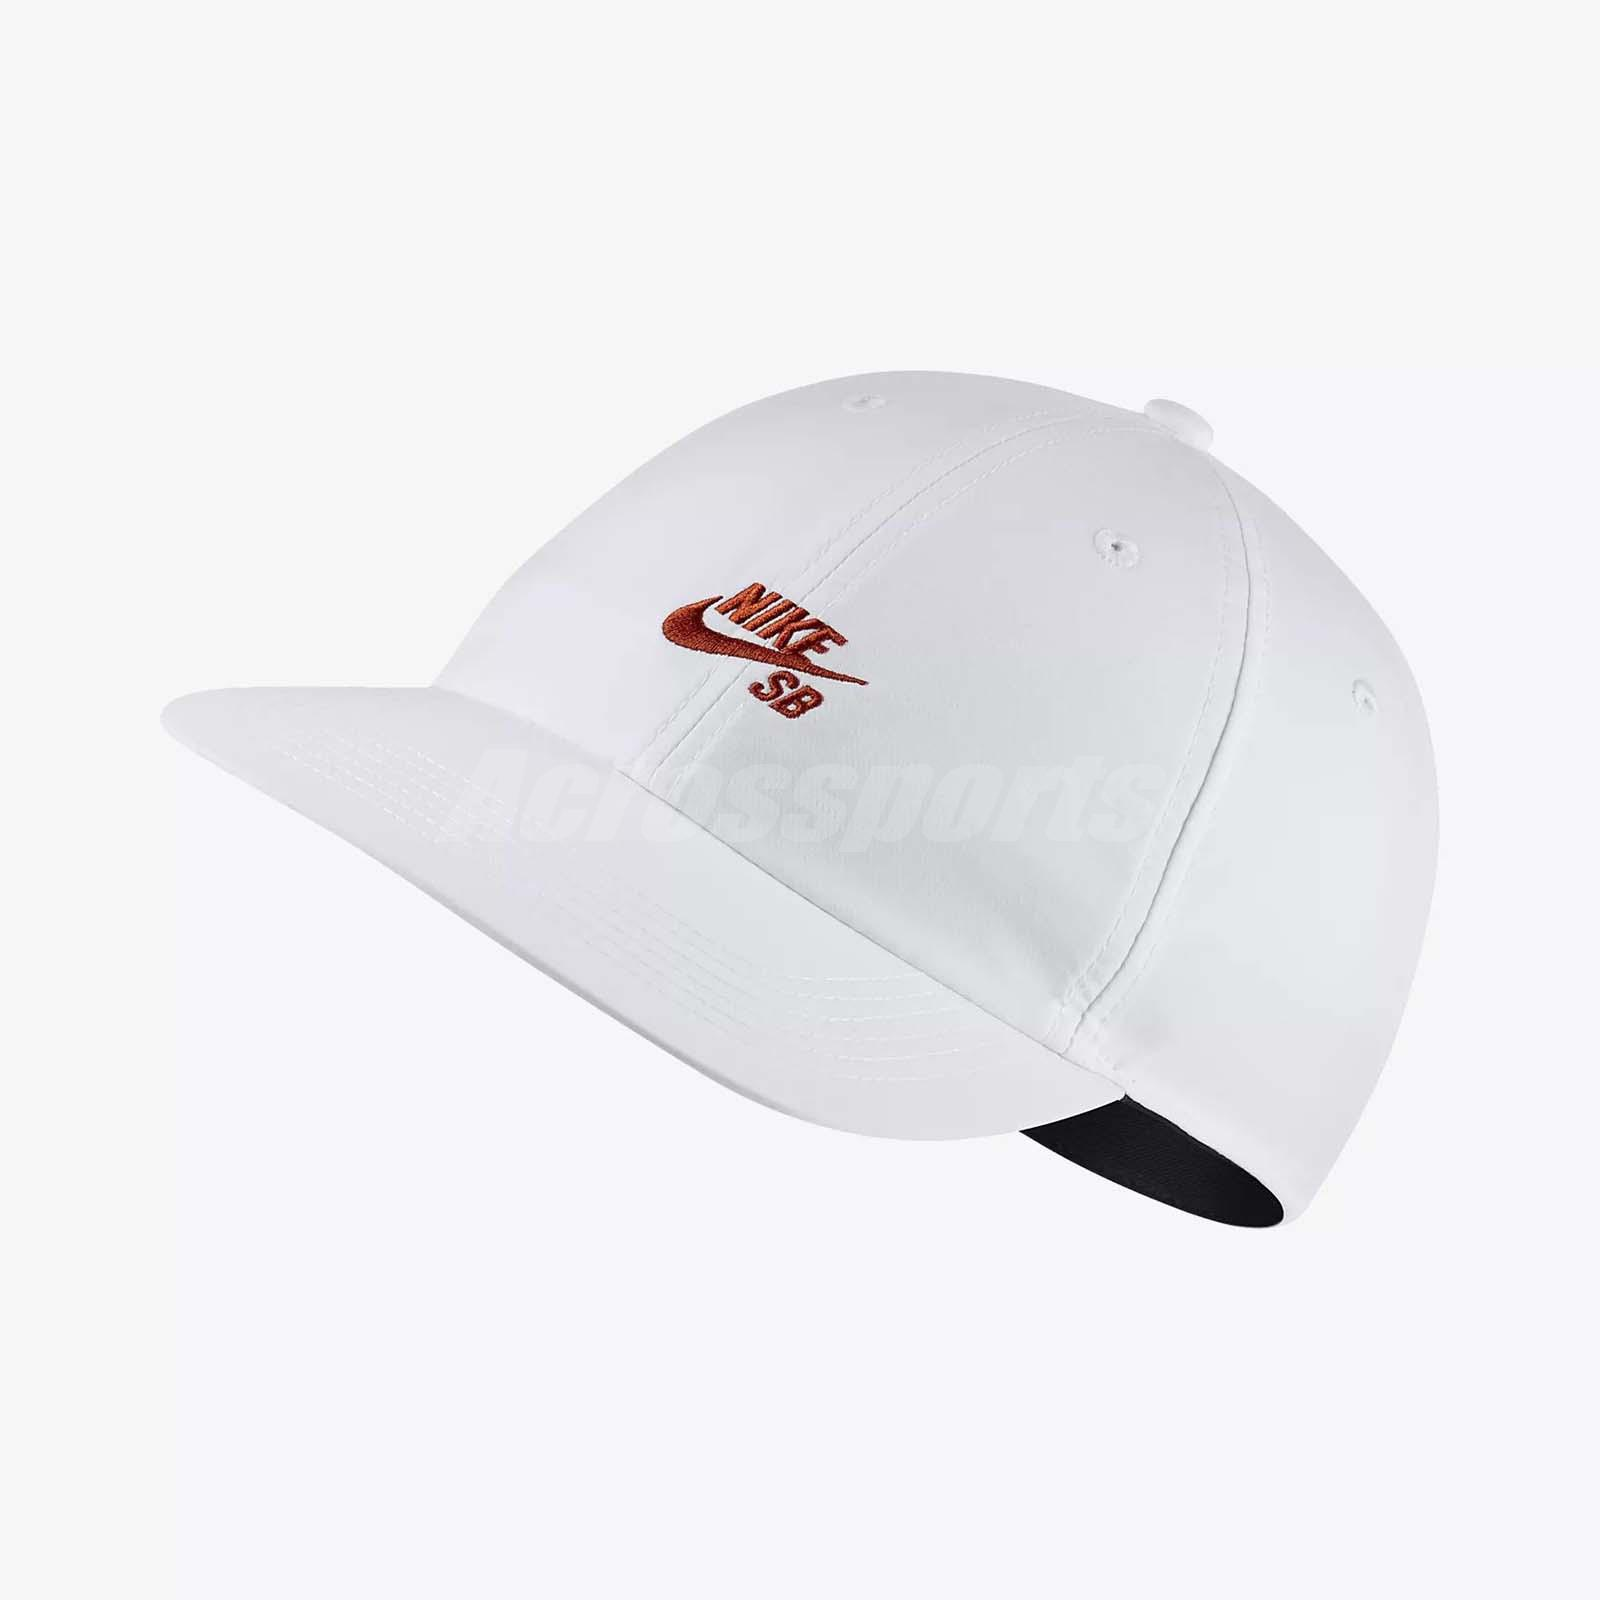 370fd4ab Details about Nike SB Heritage 86 Adjustable Hat H86 Cap Skateboarding  Sports White 926686-100